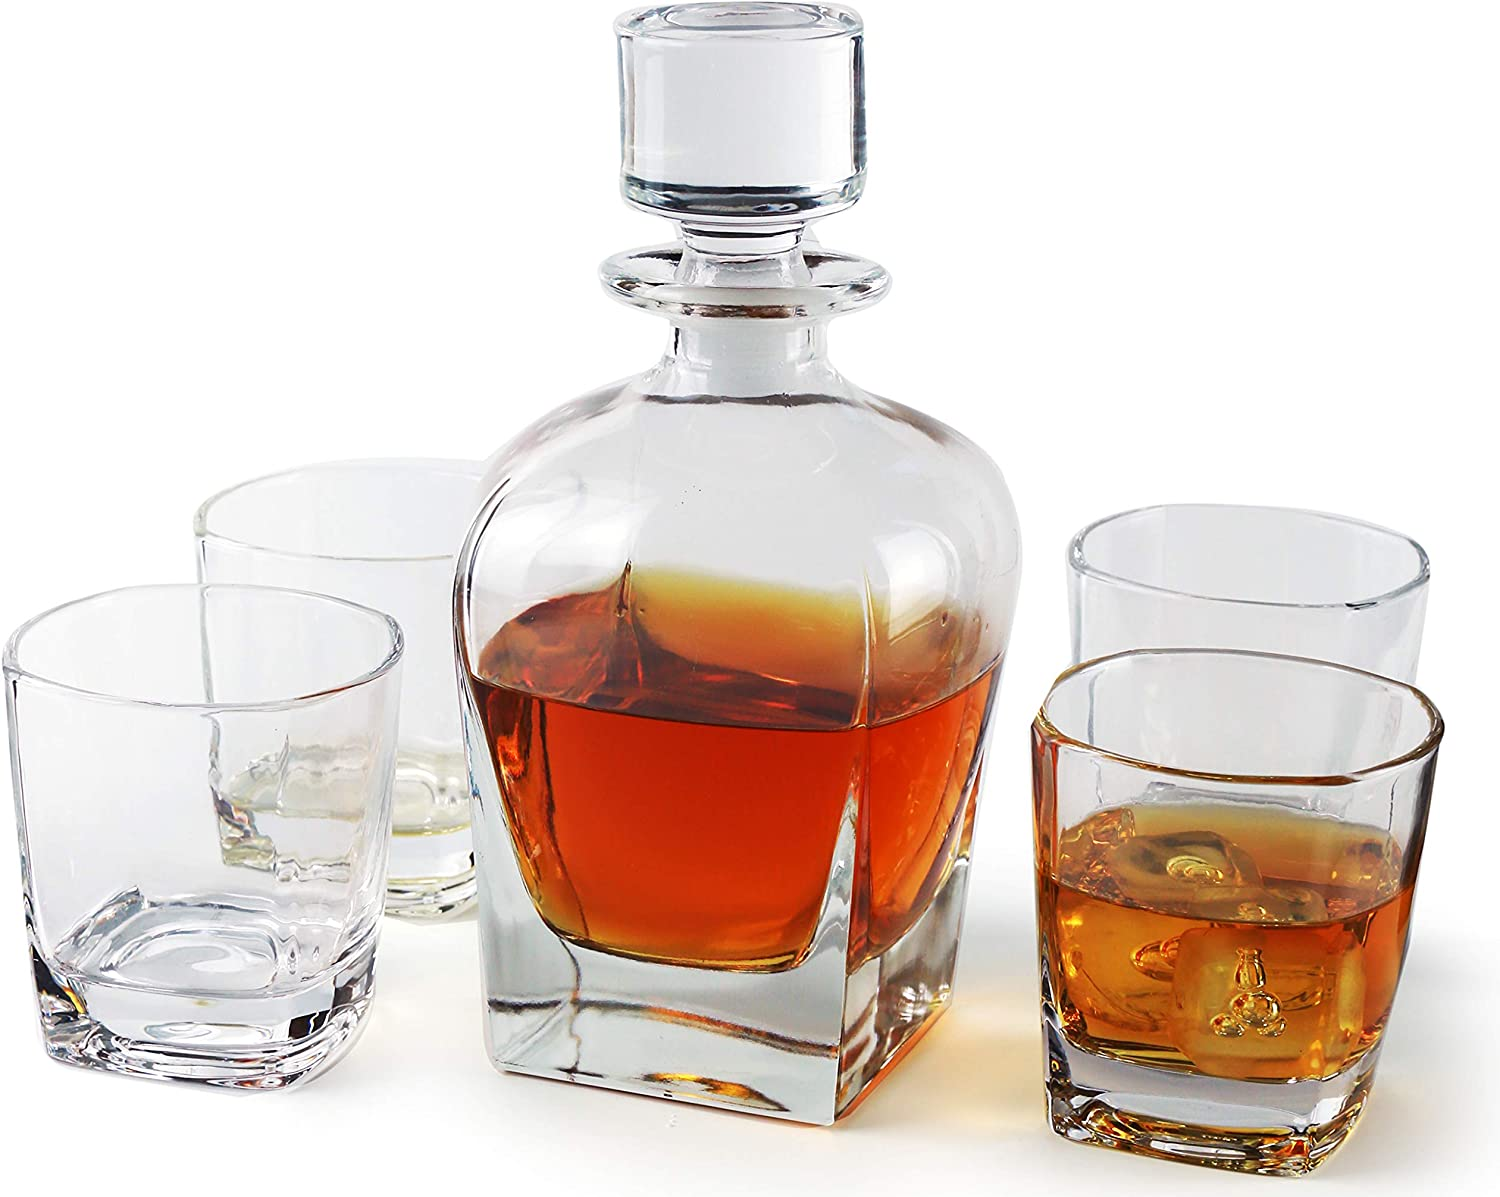 Circleware Monarch Whiskey Decanter Entertainment Set of 5 1 Liquor Dispenser Beverage Bottle with Round Stopper and 4 Matching Bar Drinking Glasses, 24 oz, Carafe & 9 oz. Cups